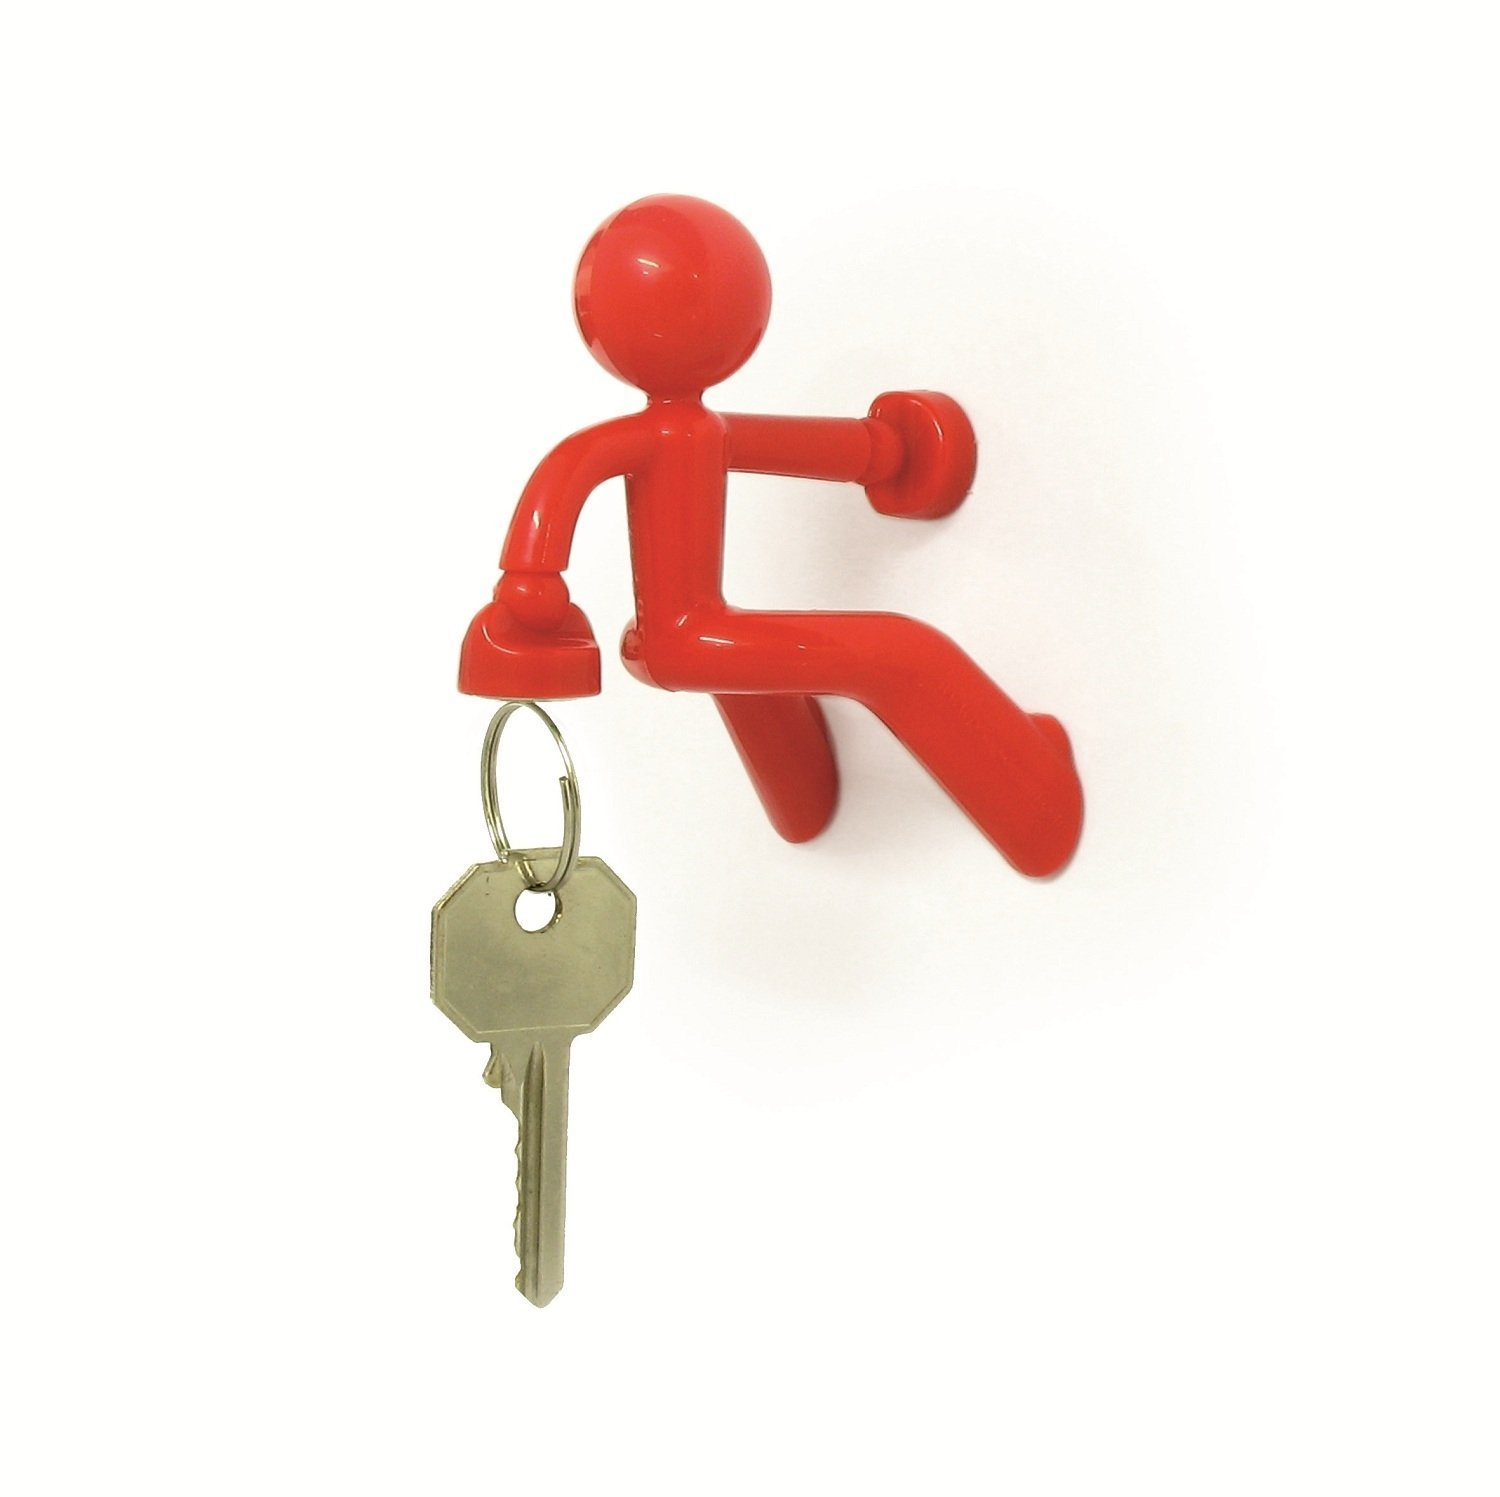 Asien Magnetic Key Holder Wall Climbing Strong Keyring Hooks Fashion Red 1pcs